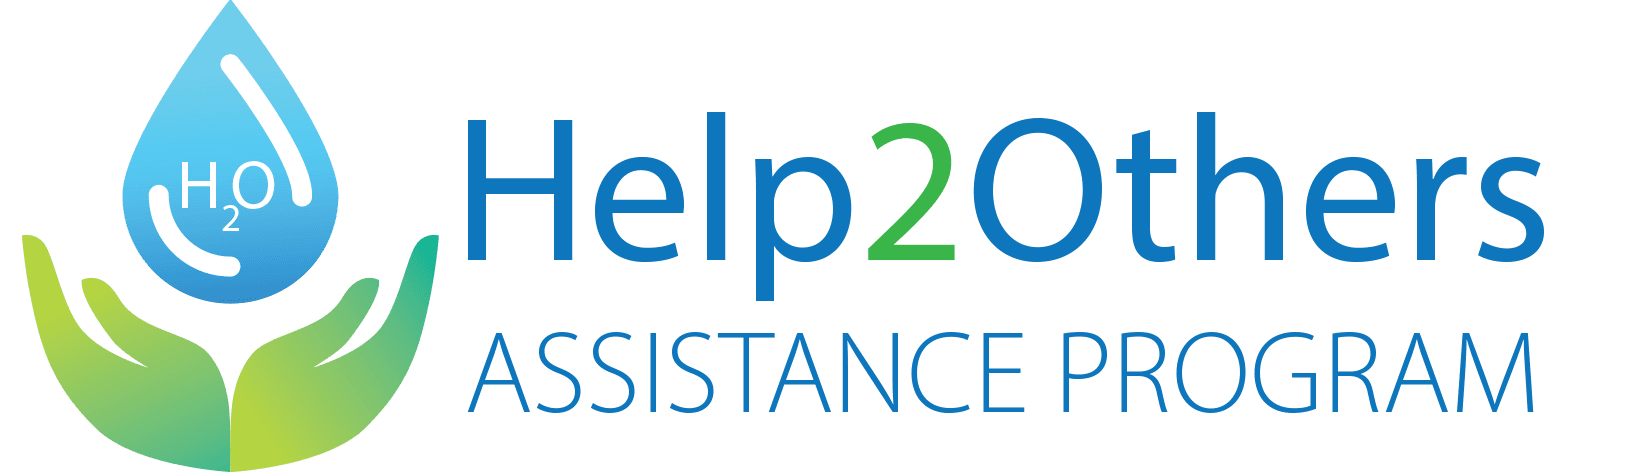 Help2Others Customer Assistance Program Logo